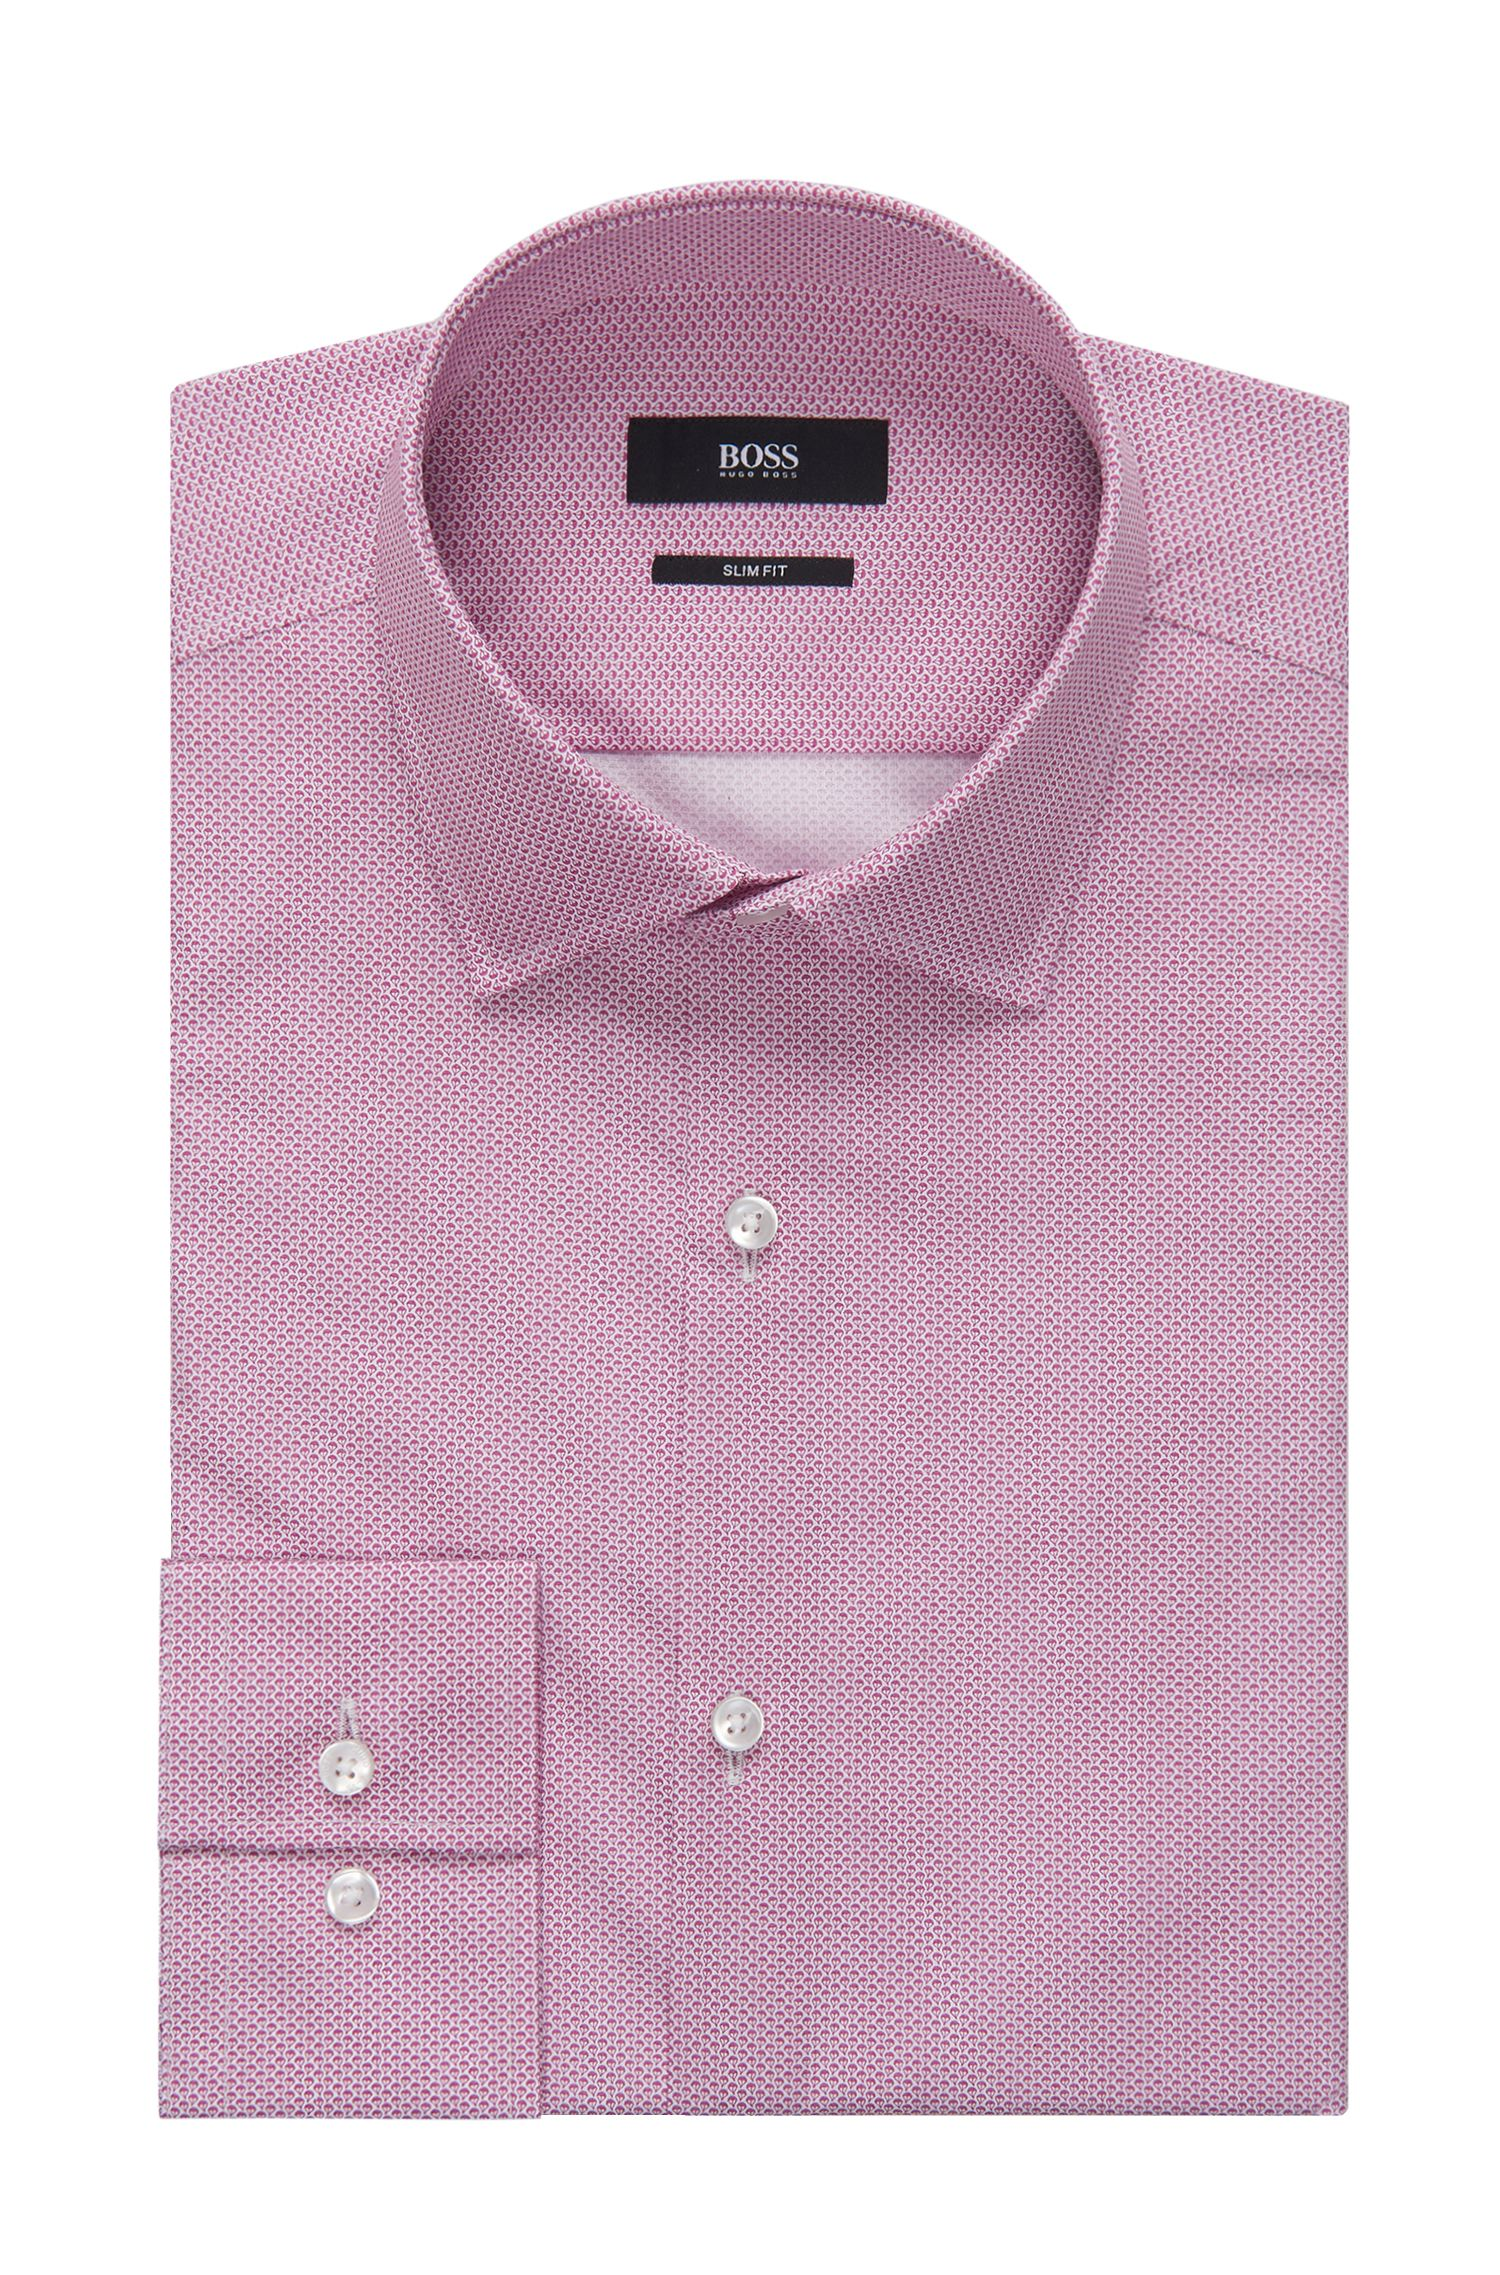 Geometric Italian Cotton Dress Shirt, Slim Fit | Jenno